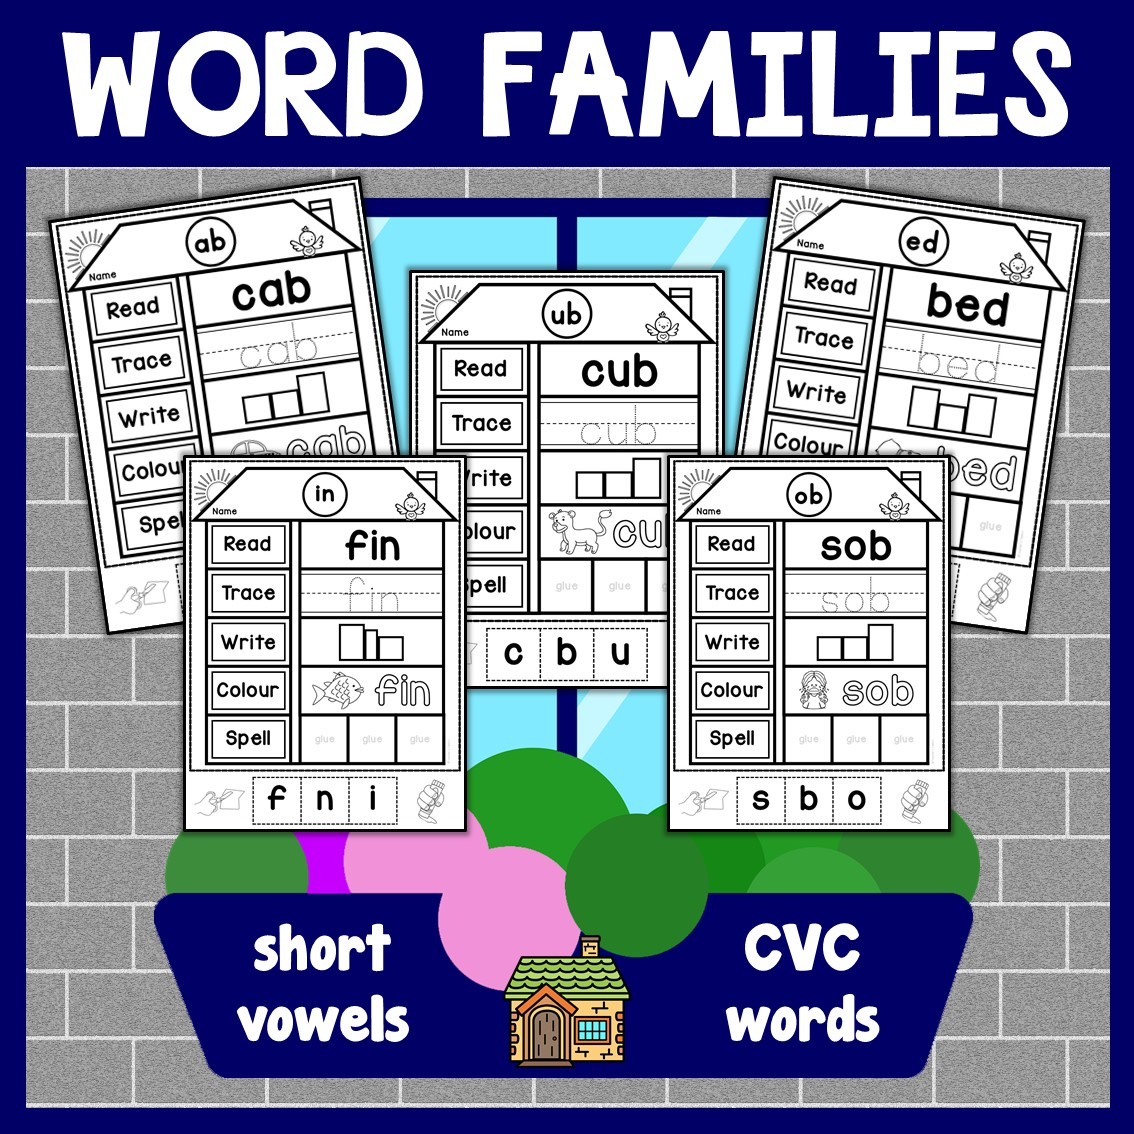 Cvc Words Families Activity Worksheets